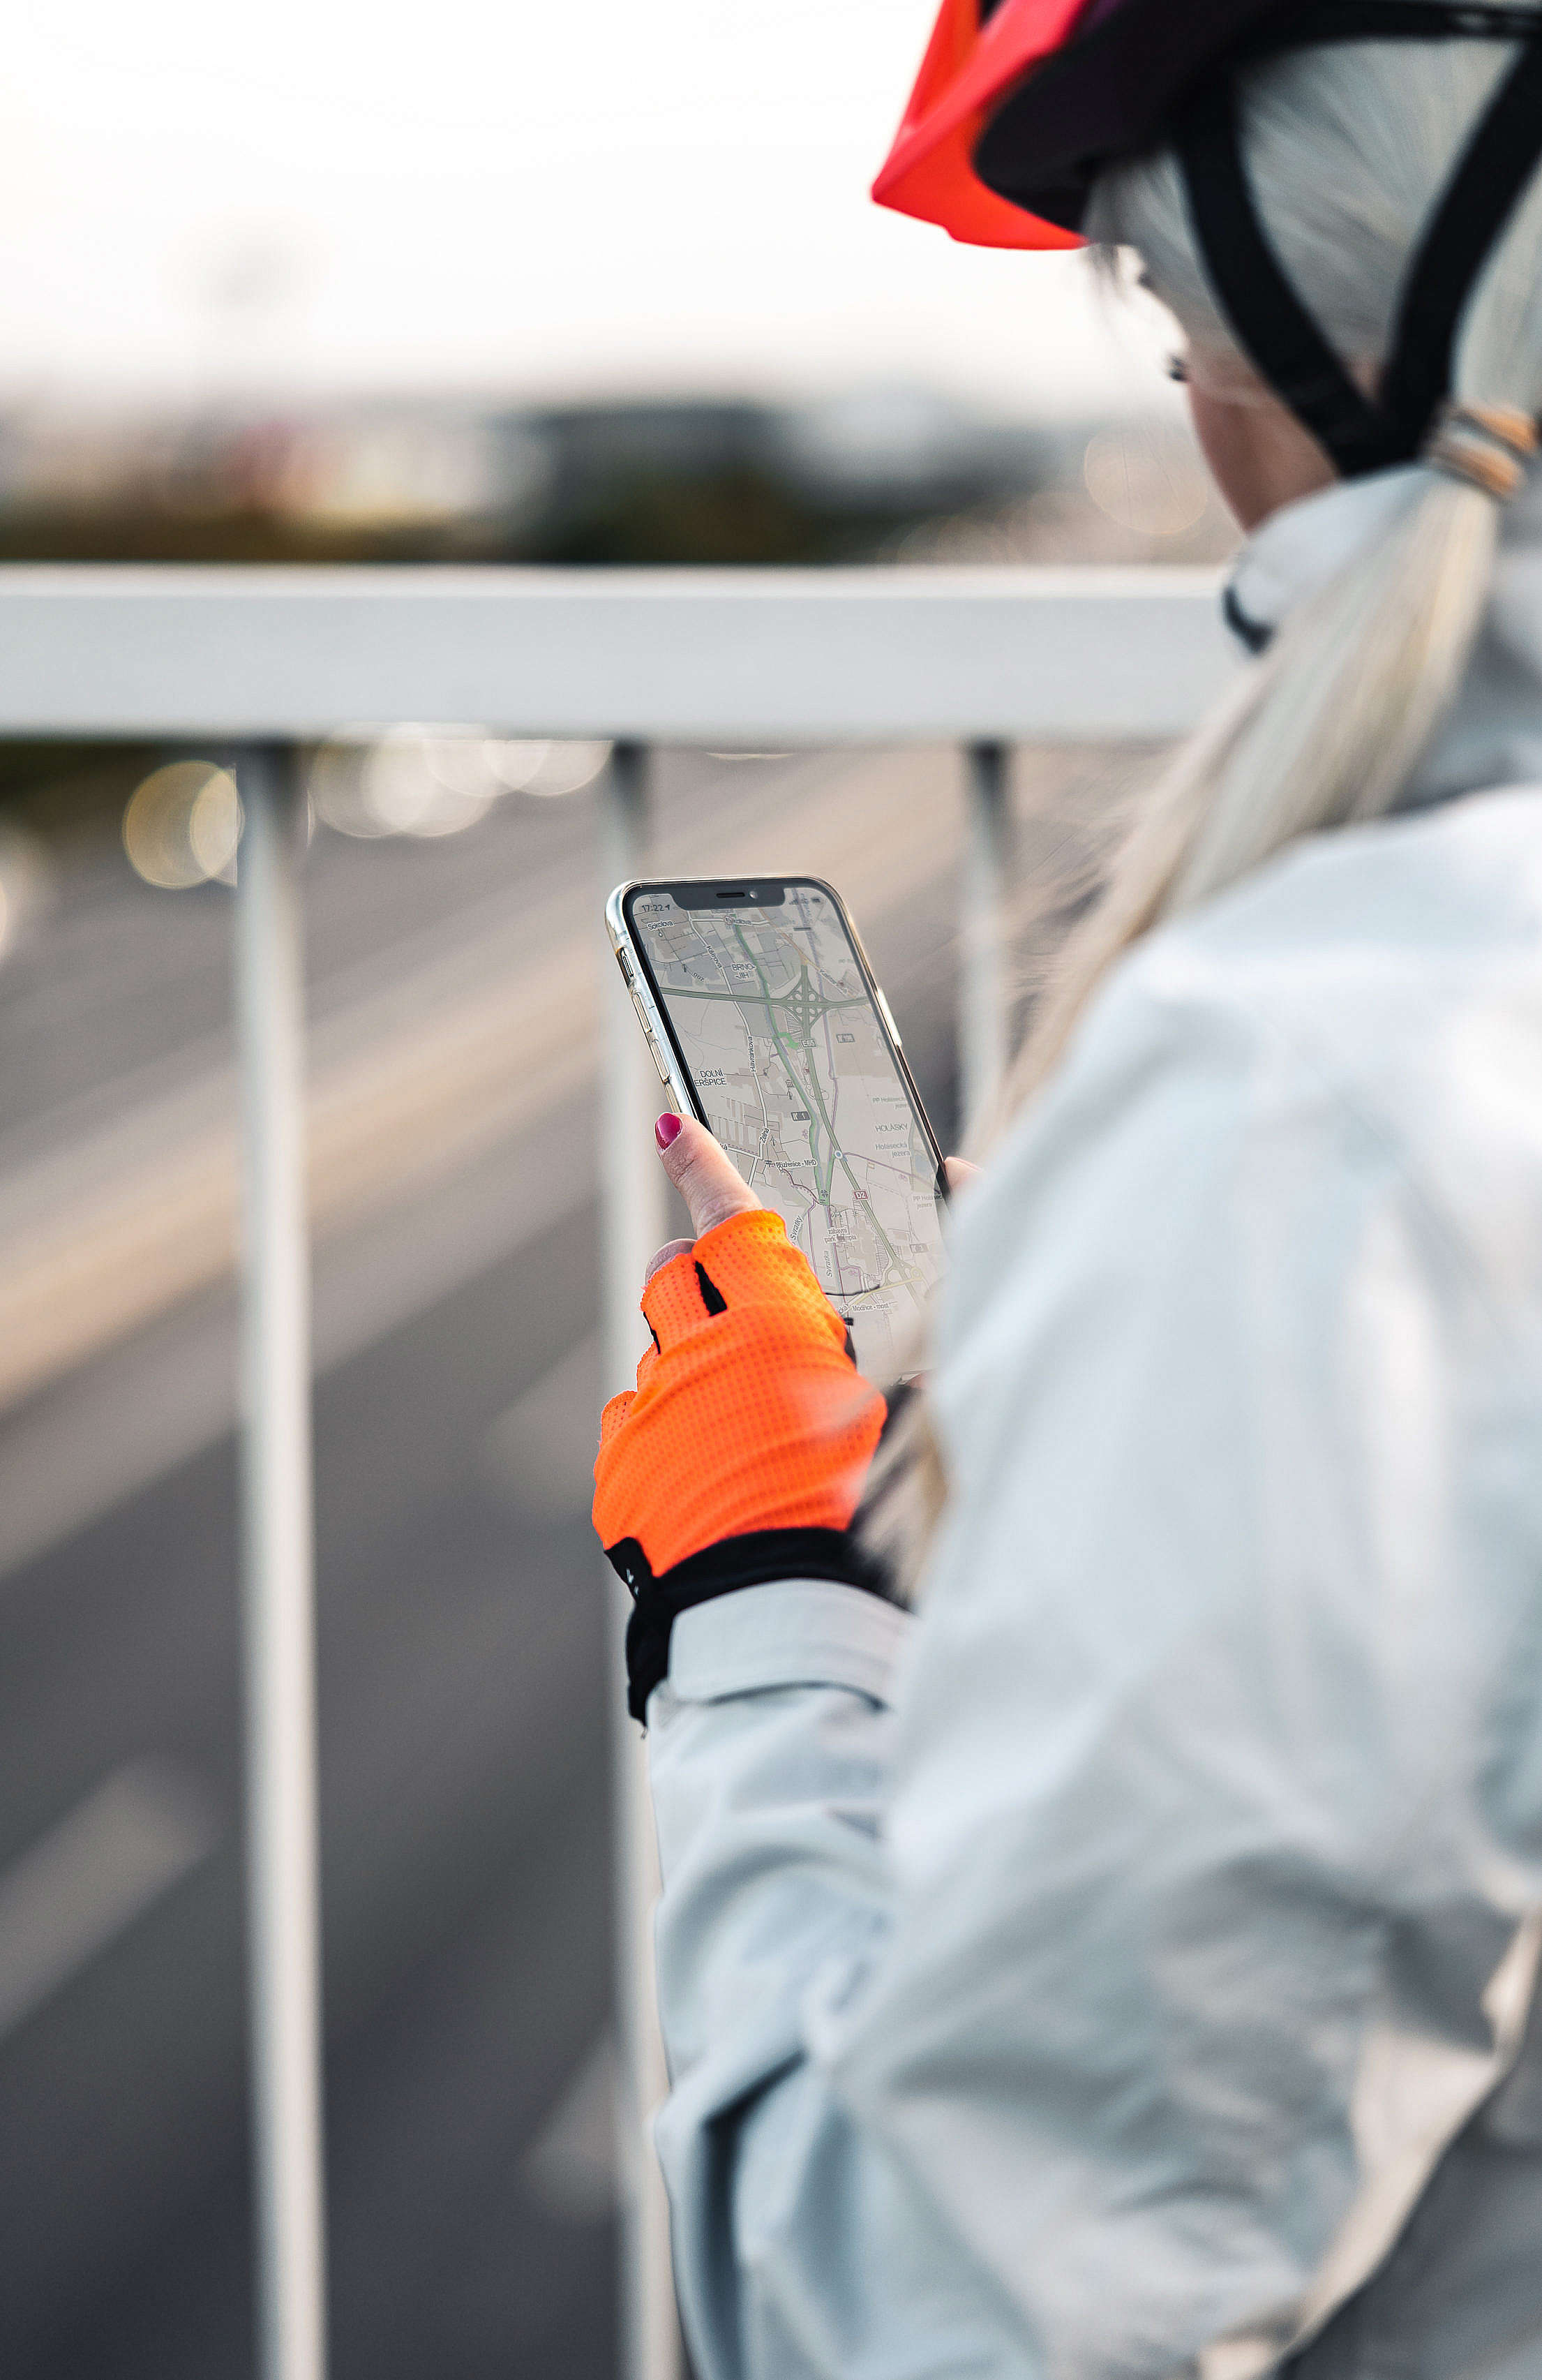 Cyclist Looking at The Map in The iPhone Free Stock Photo